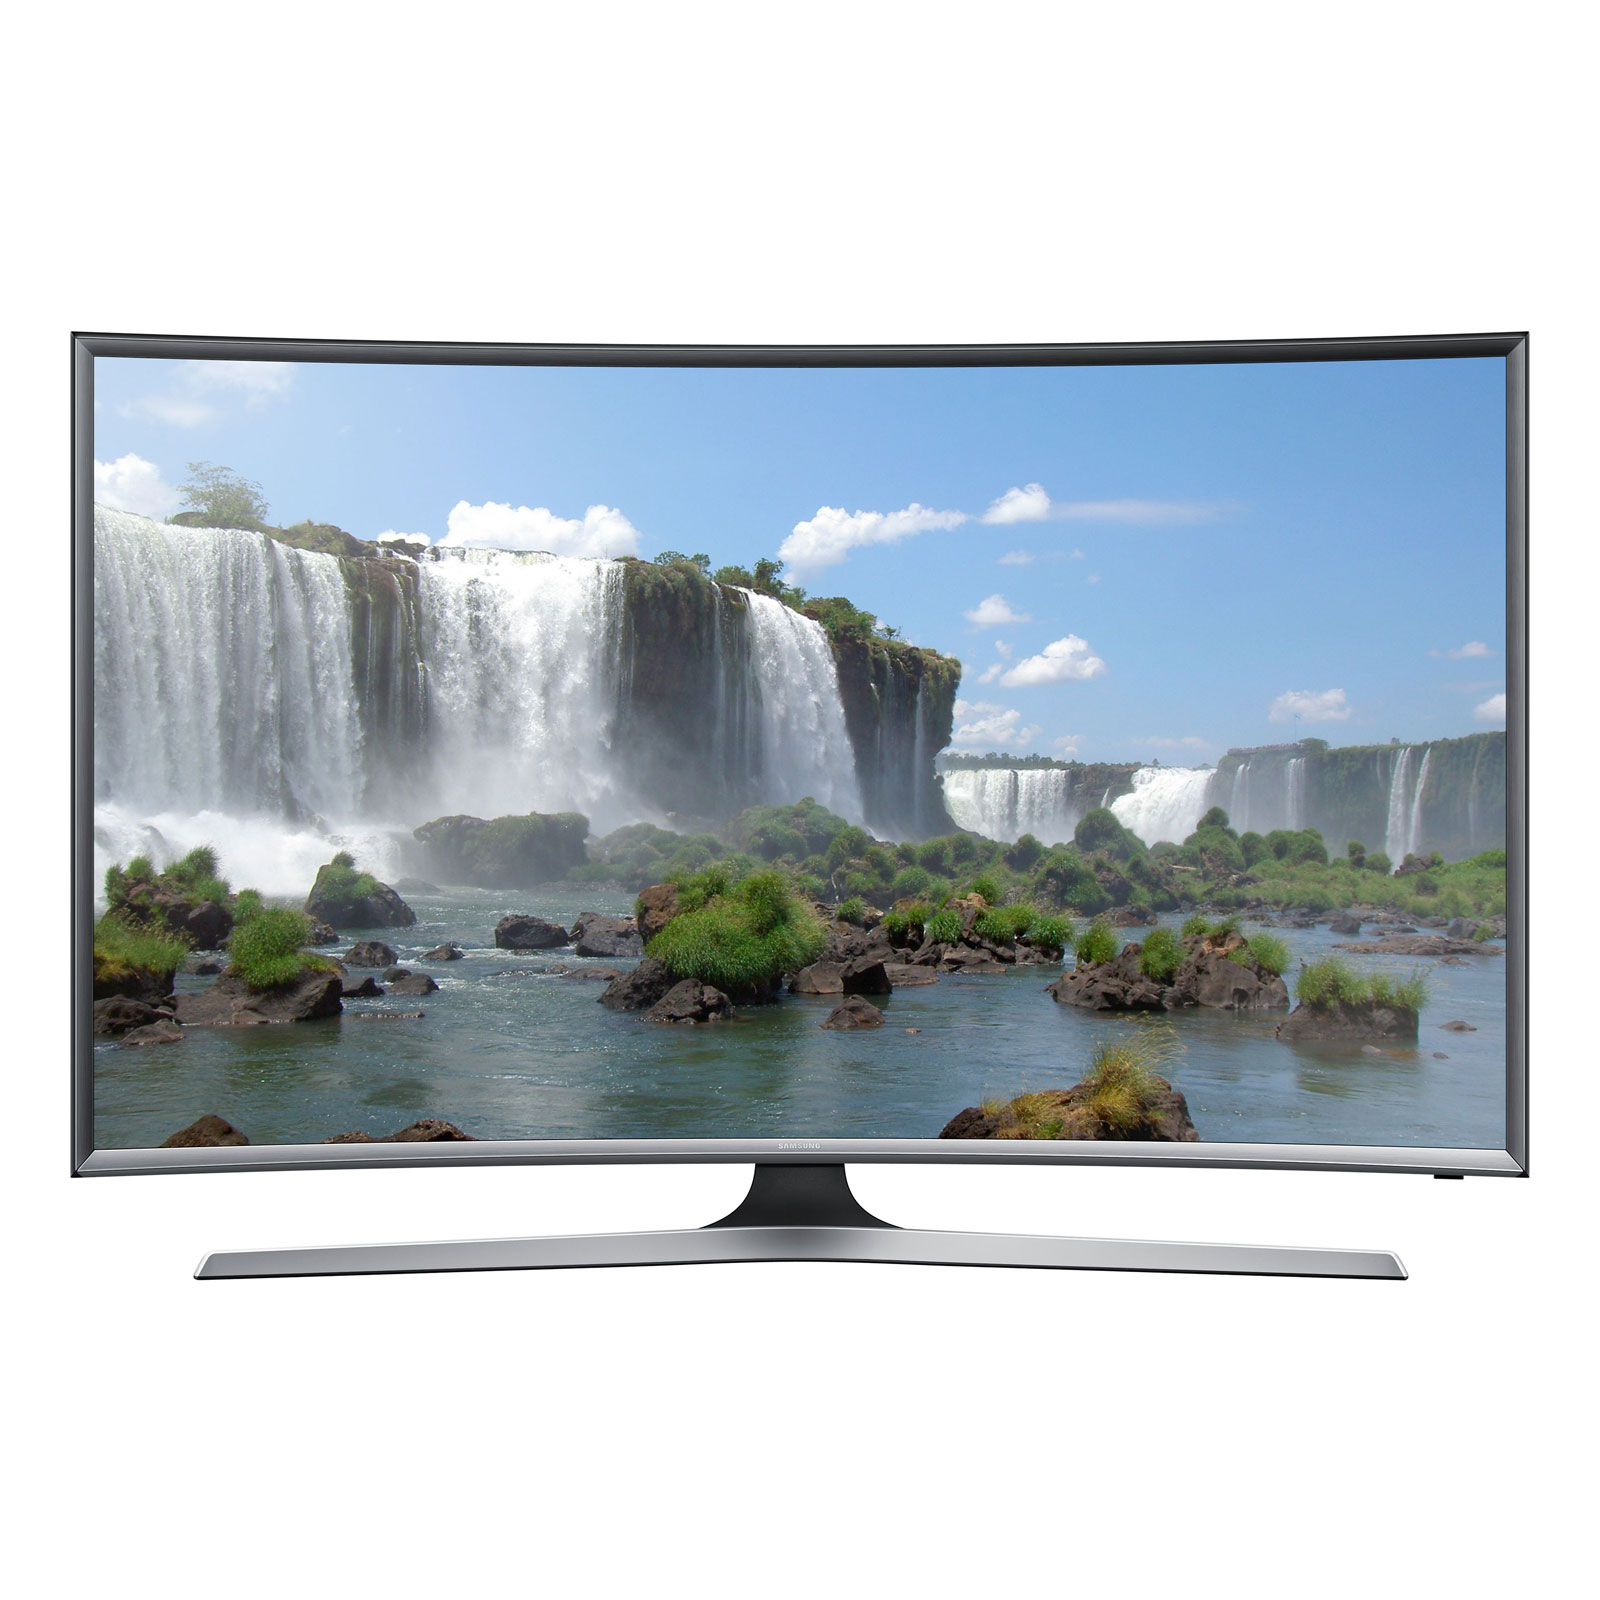 samsung ue32j6300 tv samsung sur ldlc. Black Bedroom Furniture Sets. Home Design Ideas